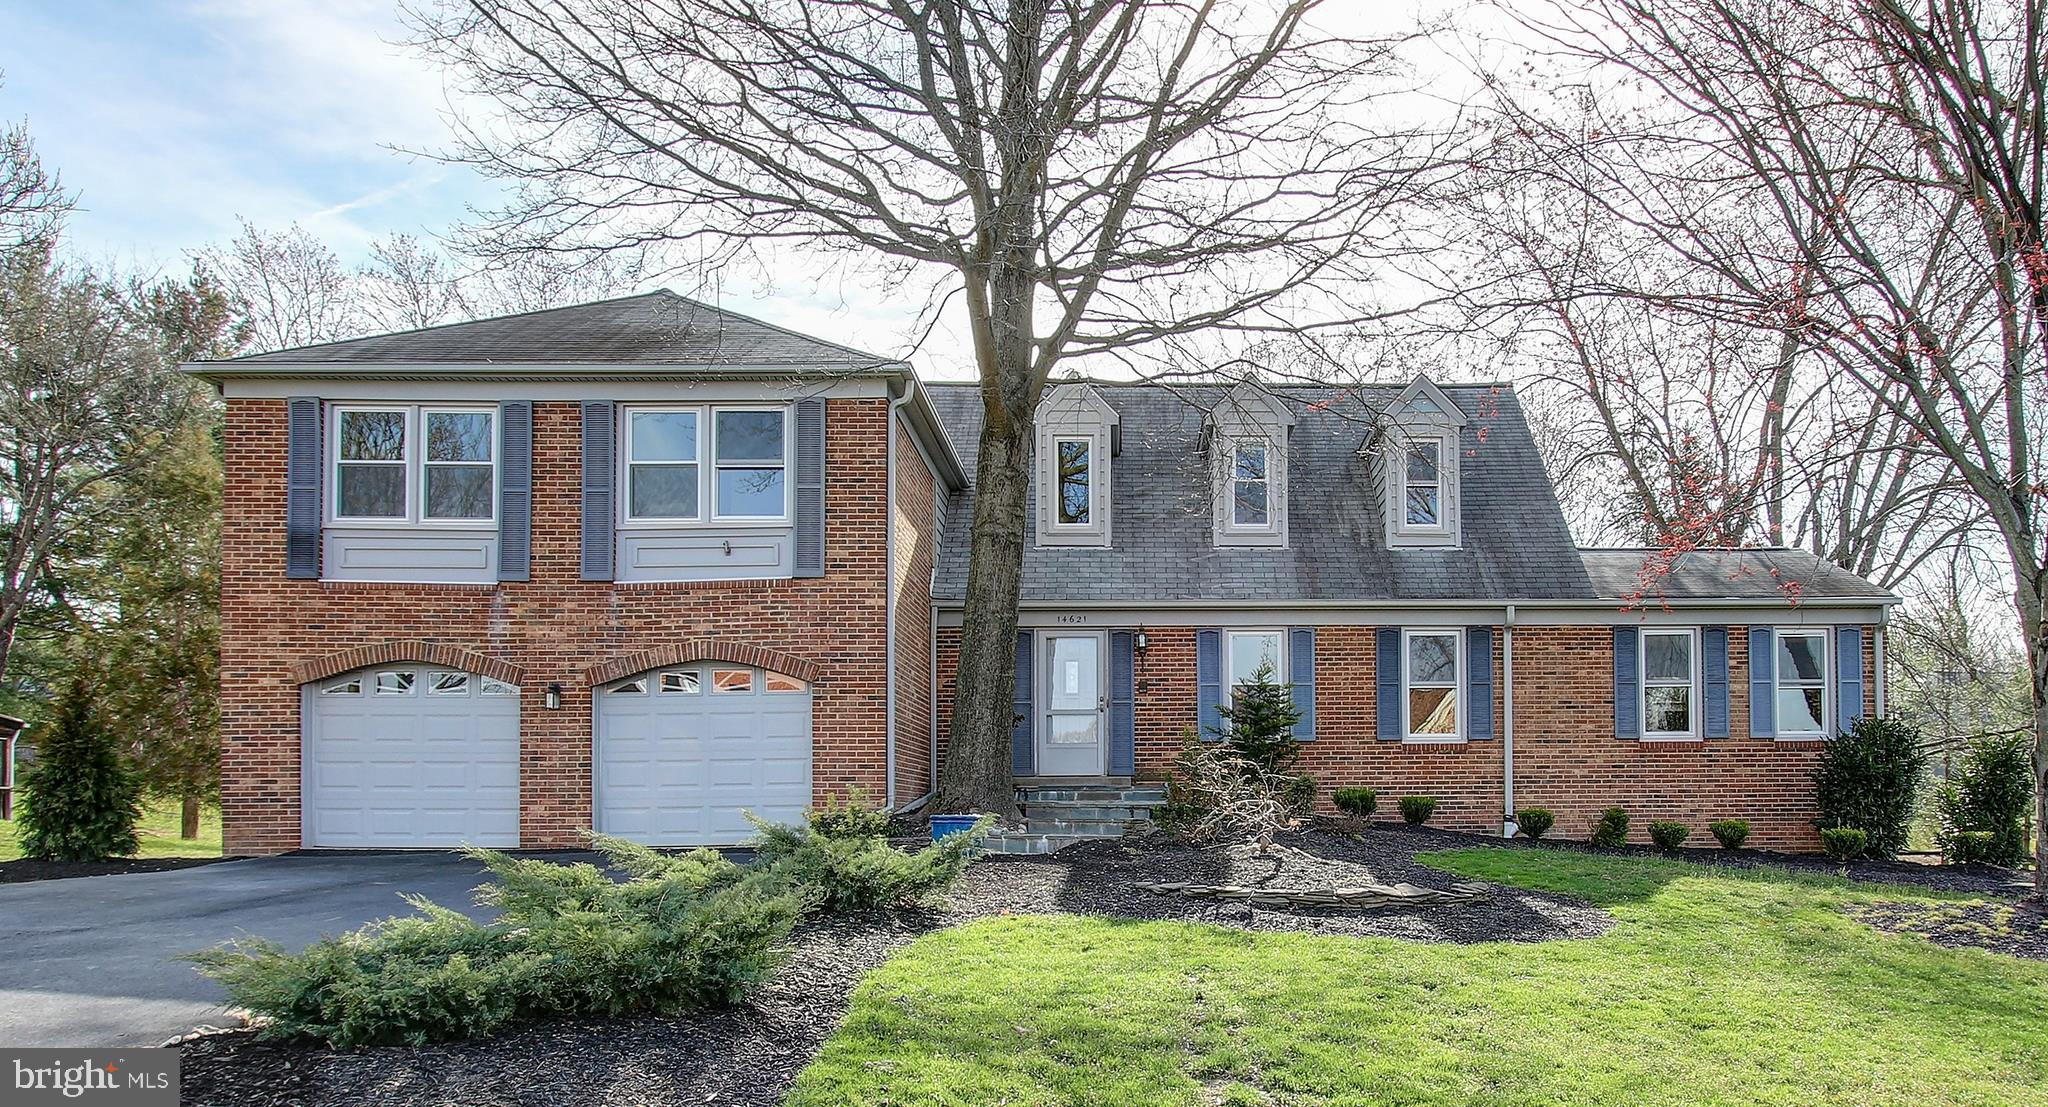 14621 SILVERSTONE DRIVE, SILVER SPRING, MD 20905